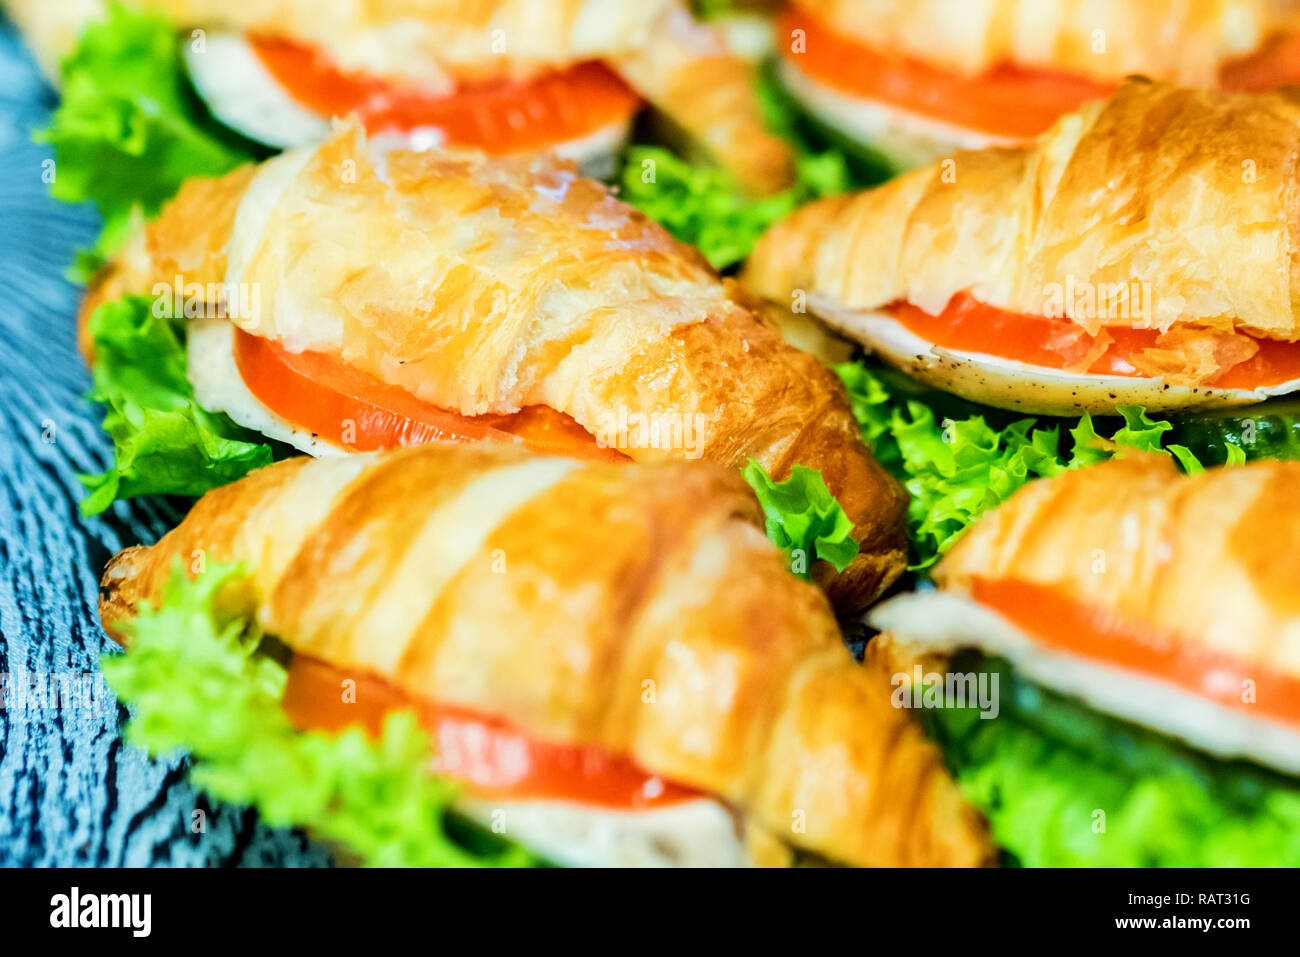 Close up fresh croissants with salad, ham and cheese on table - Stock Image